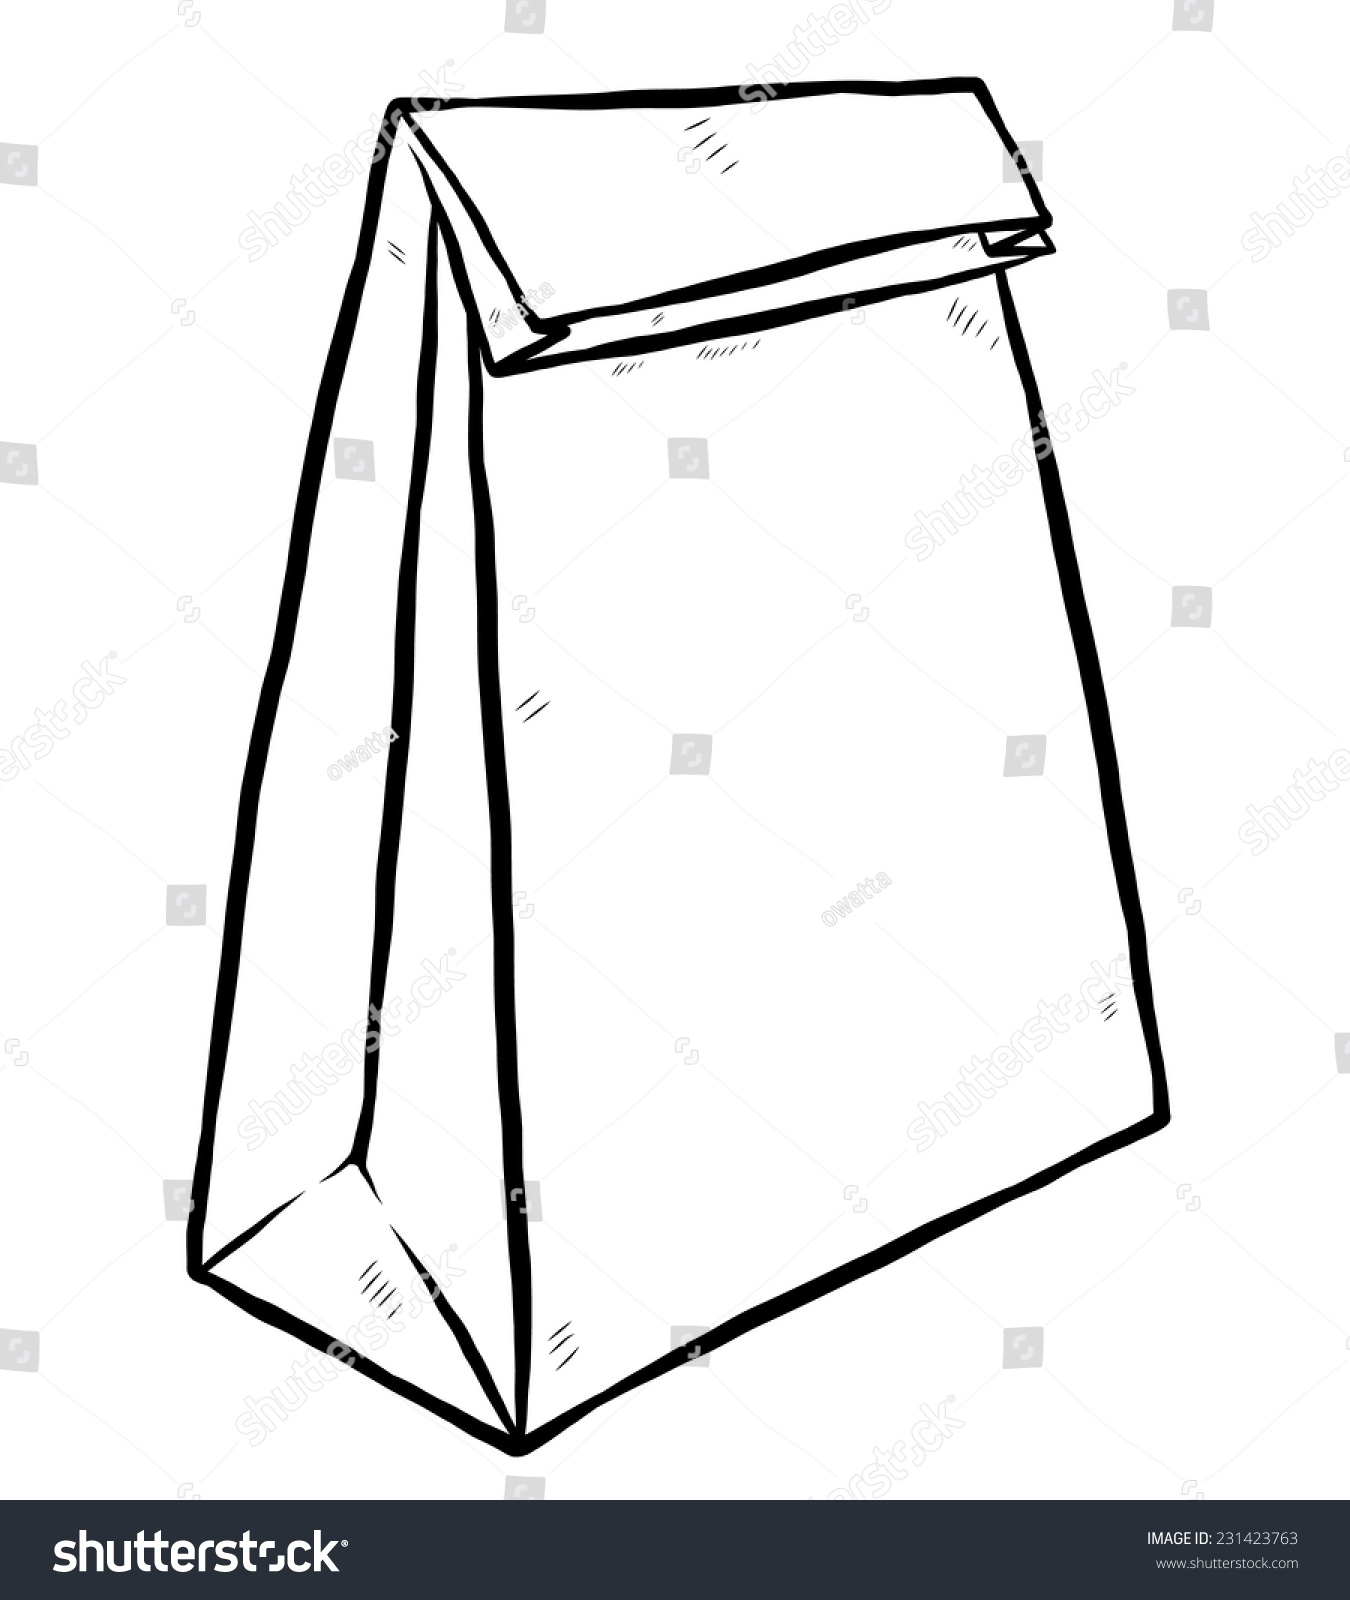 Paper bag sketch - Stock Vector Packaging Paper Bag Cartoon Vector And Illustration Black And White Hand Drawn Sketch Style